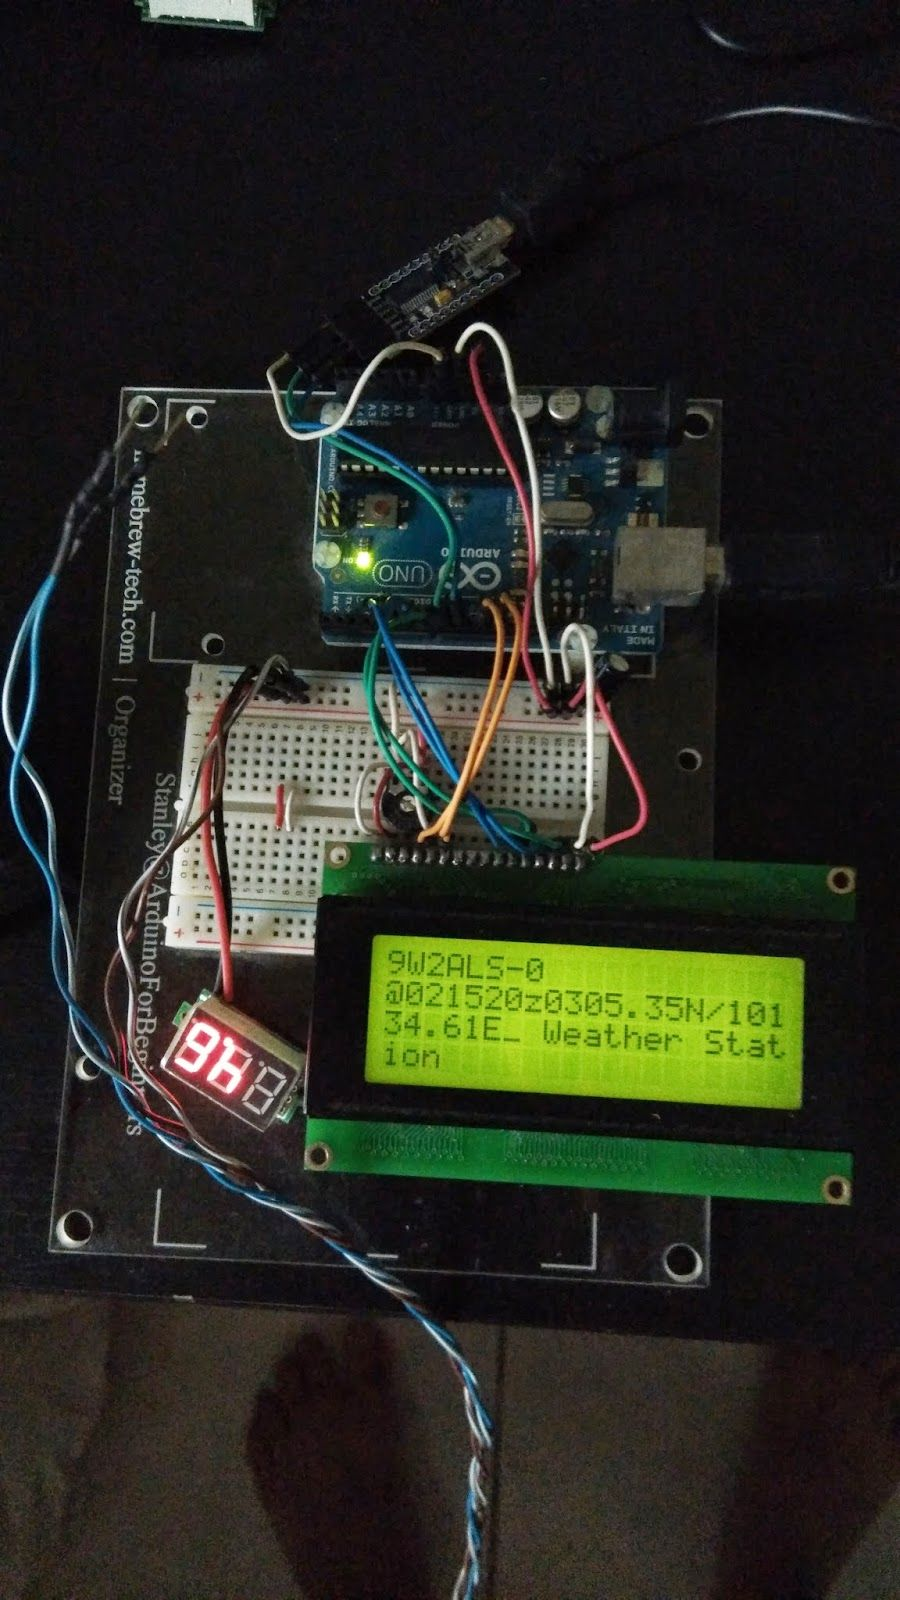 Building an Open Source Arduino APRS Tracker with LCD & GPS